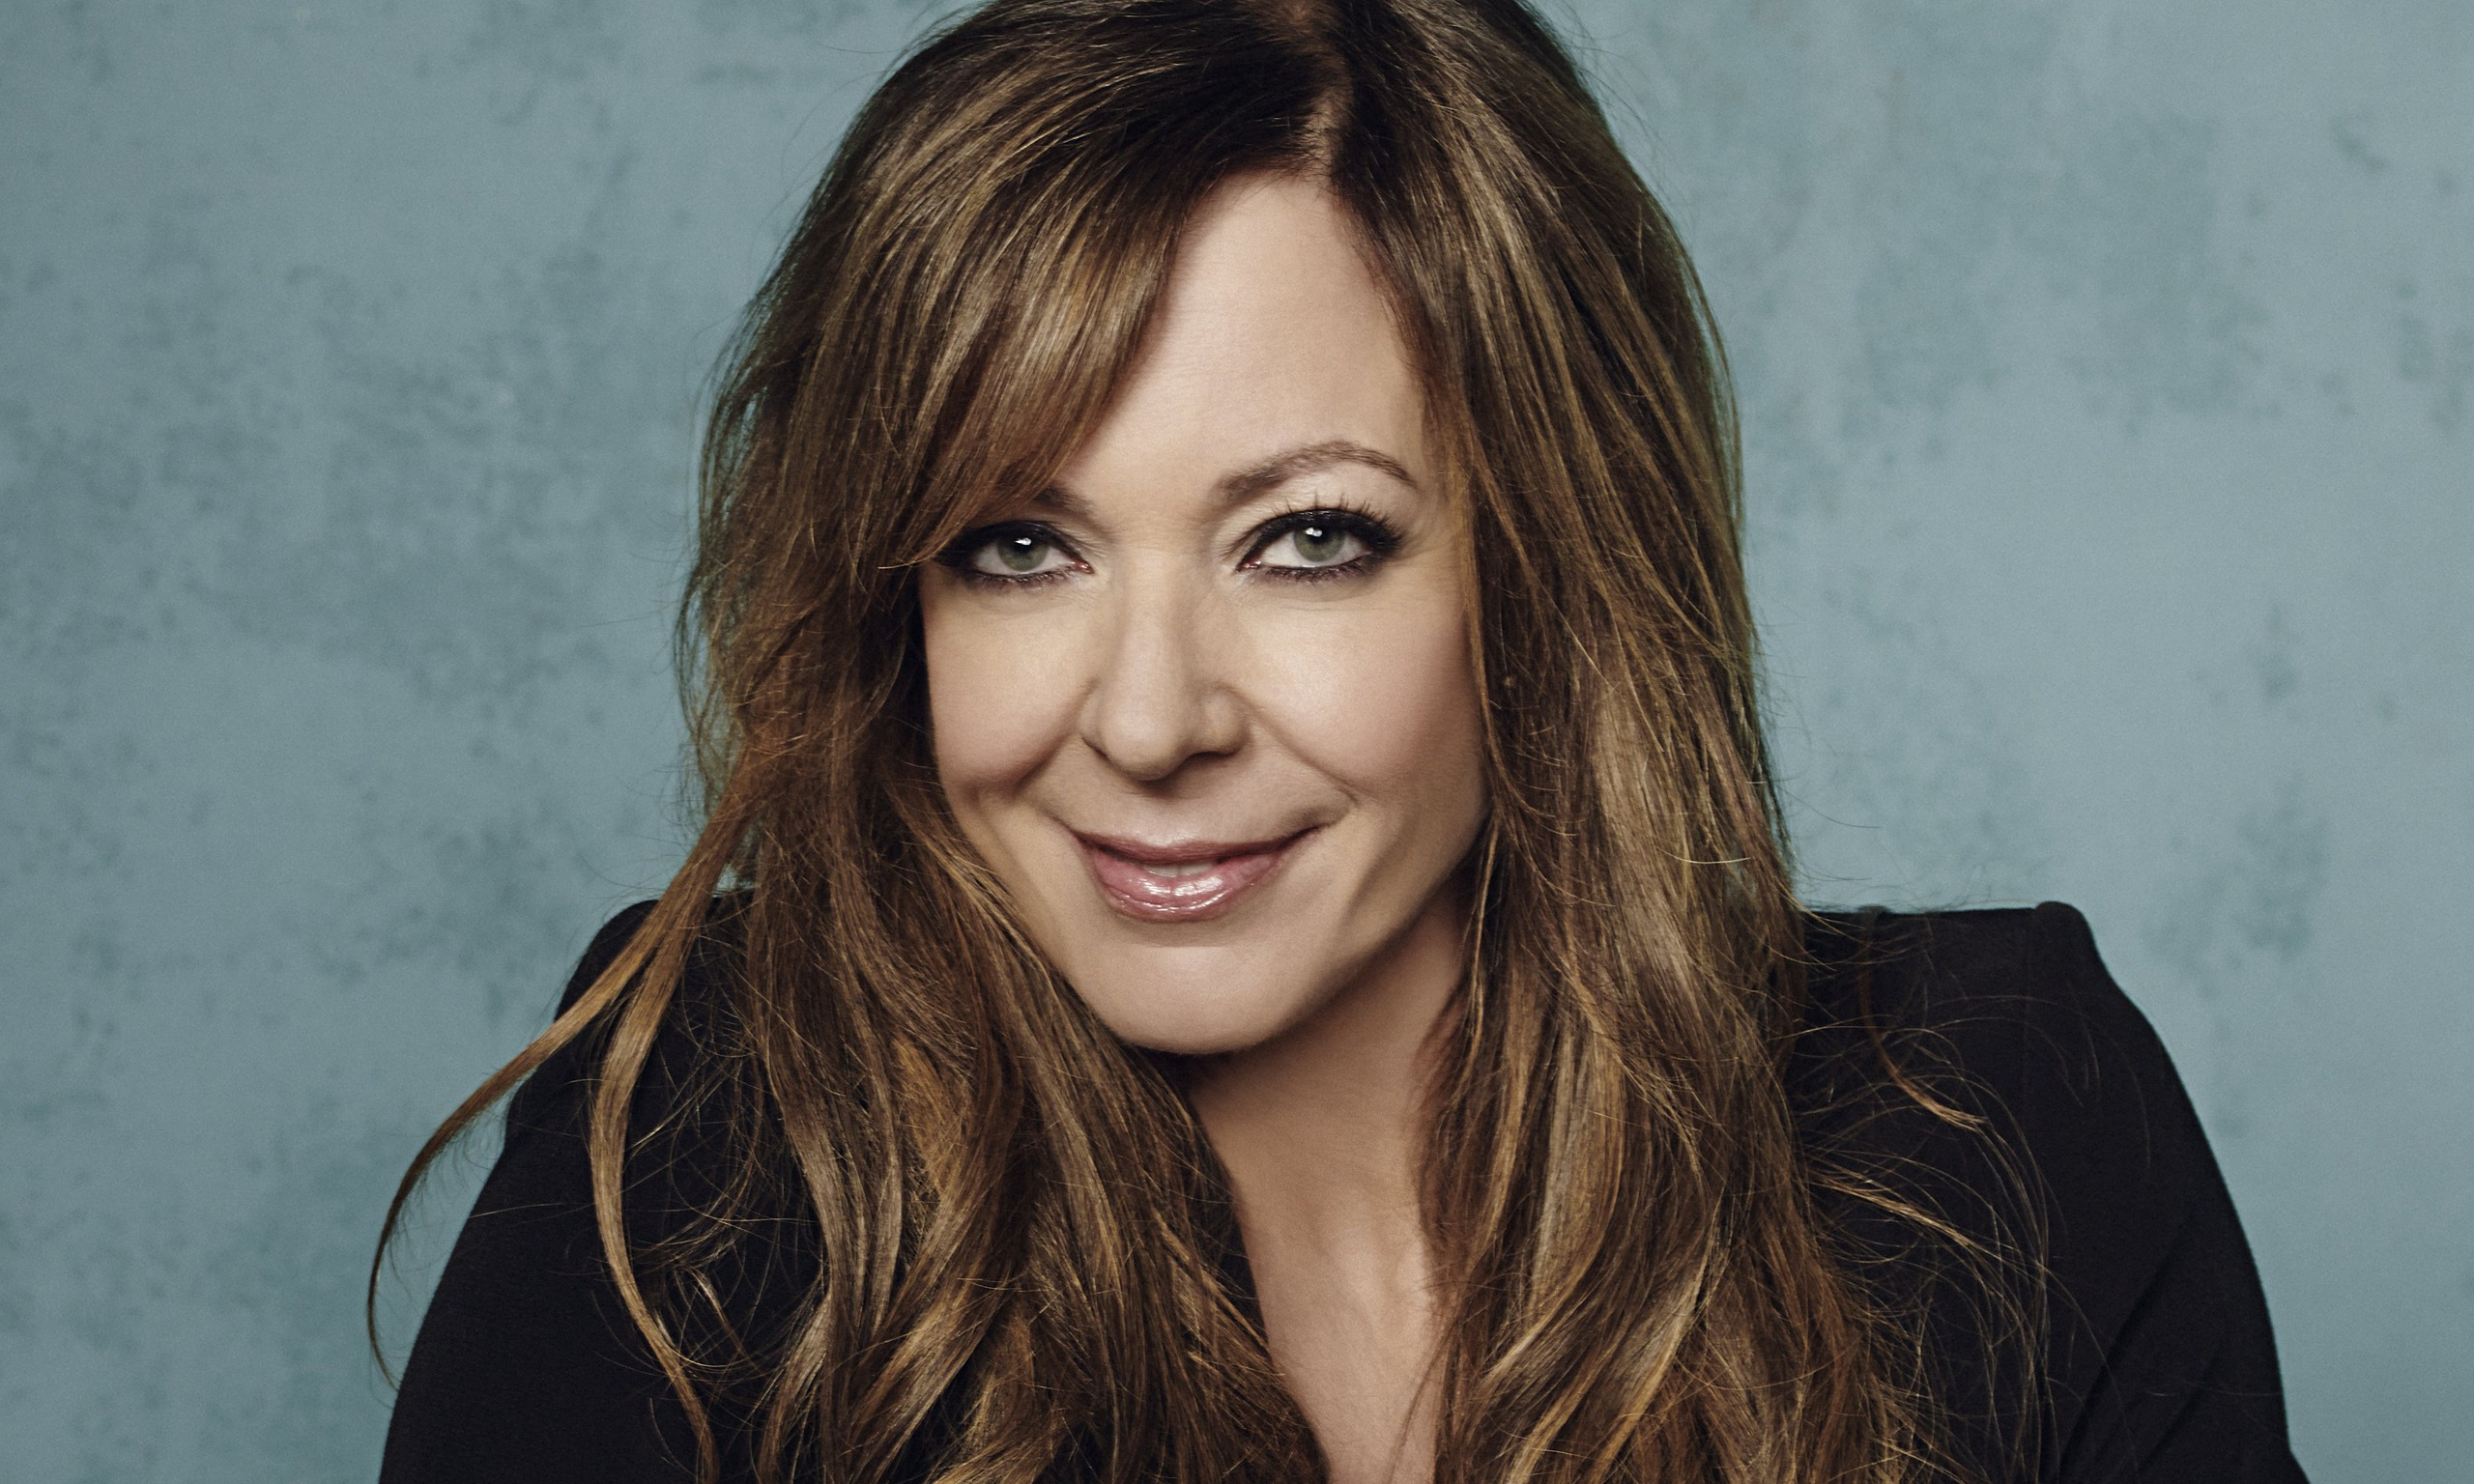 Allison Janney earned a  million dollar salary, leaving the net worth at 2 million in 2017